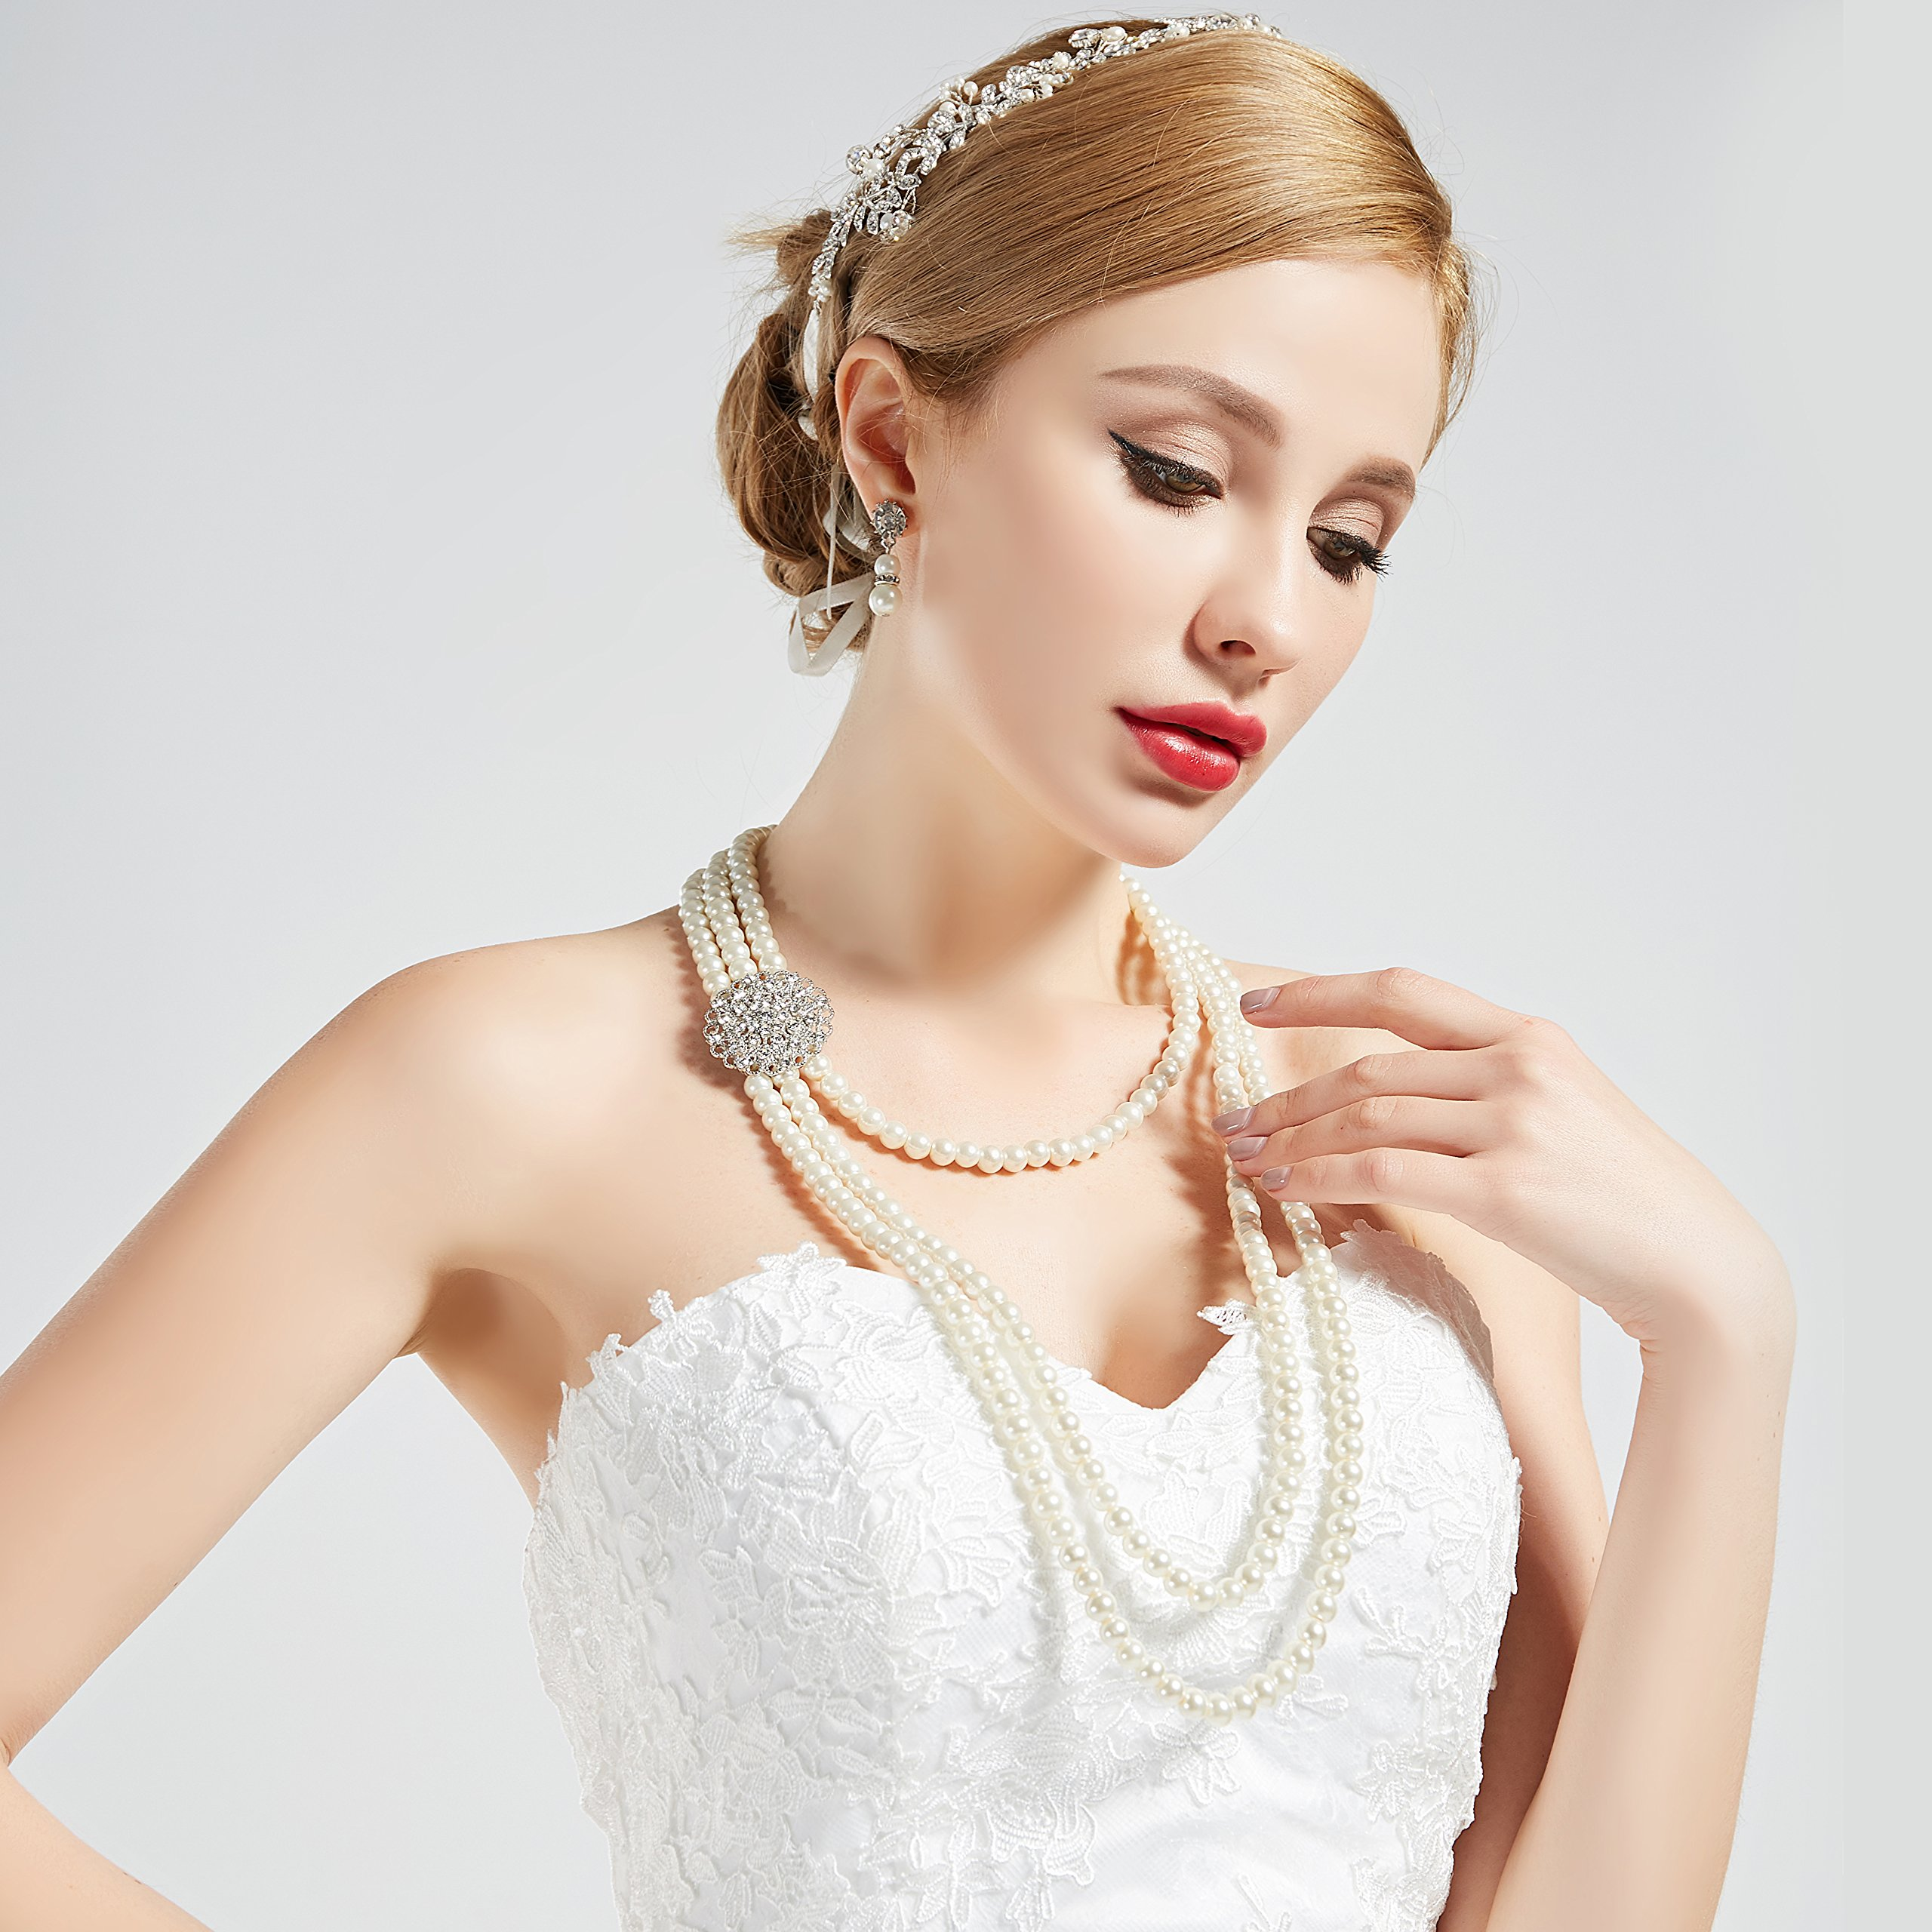 BABEYOND 1920s Gatsby Pearl Necklace Vintage Bridal Pearl Necklace Earrings Jewelry Set Multilayer Imitation Pearl Necklace with Brooch (Style 1) by BABEYOND (Image #6)